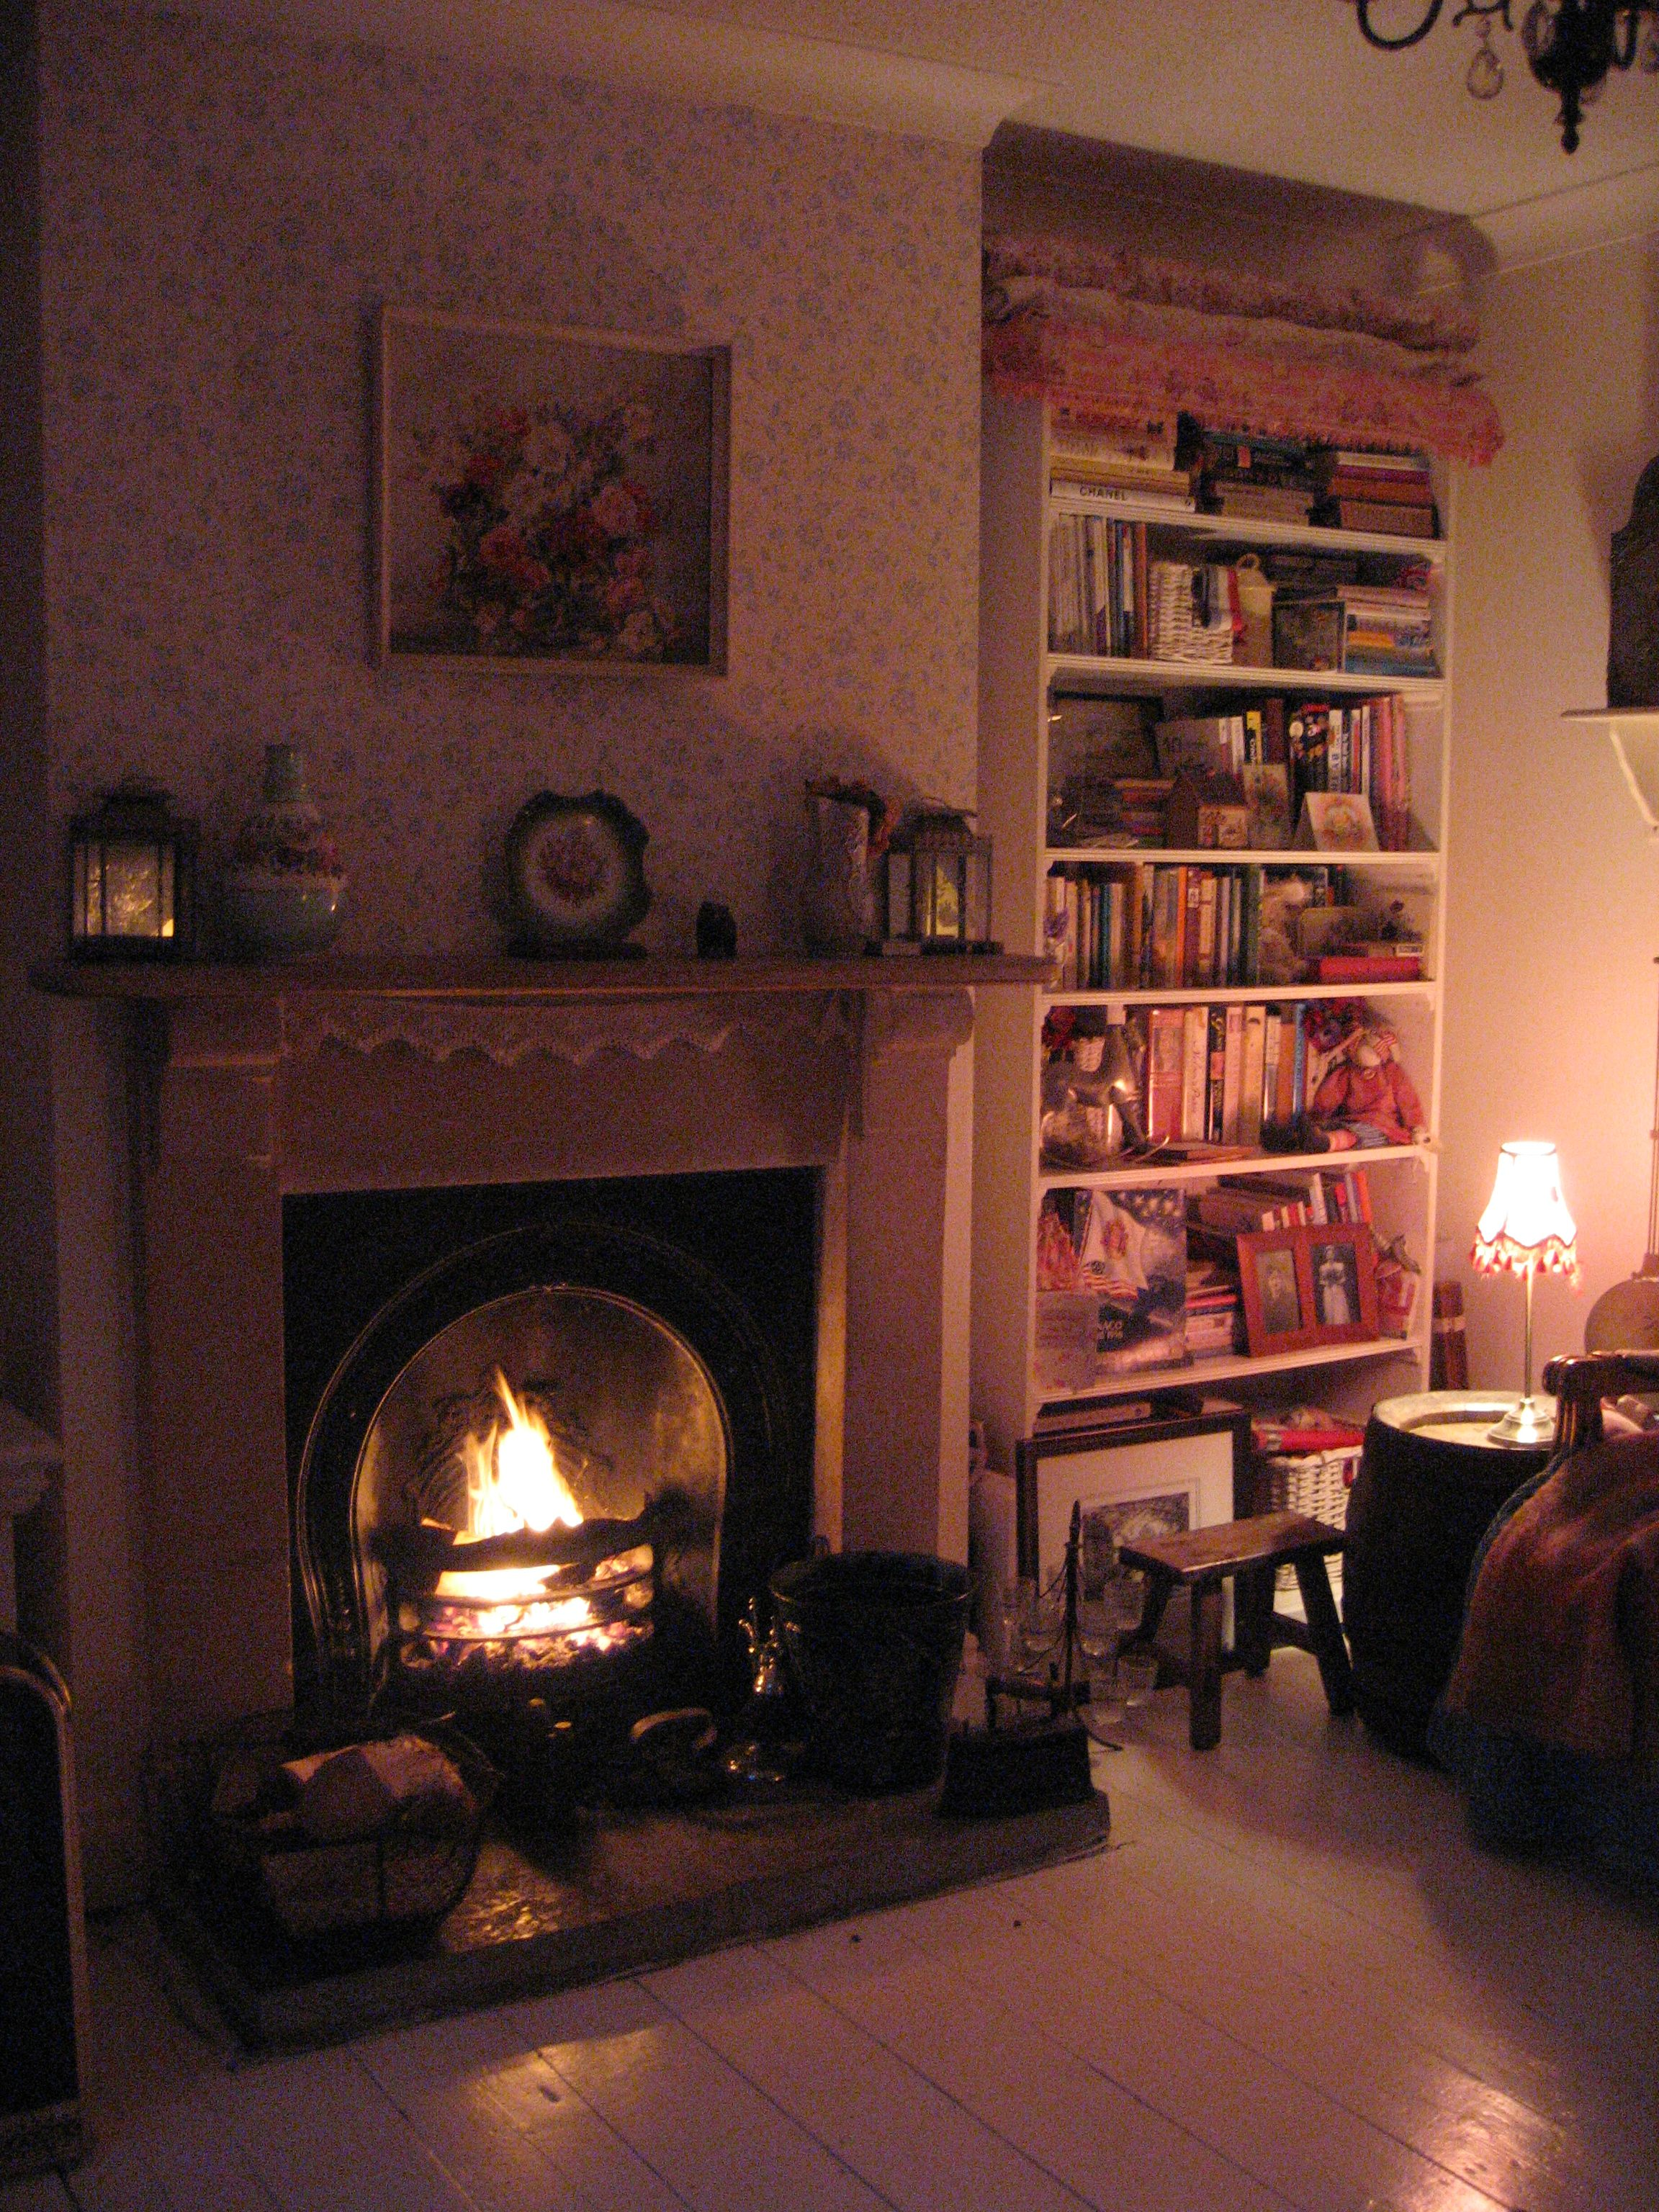 Groovy I Love Cosy Warm Winter Nights I Also Love A Real Fire Too Download Free Architecture Designs Scobabritishbridgeorg